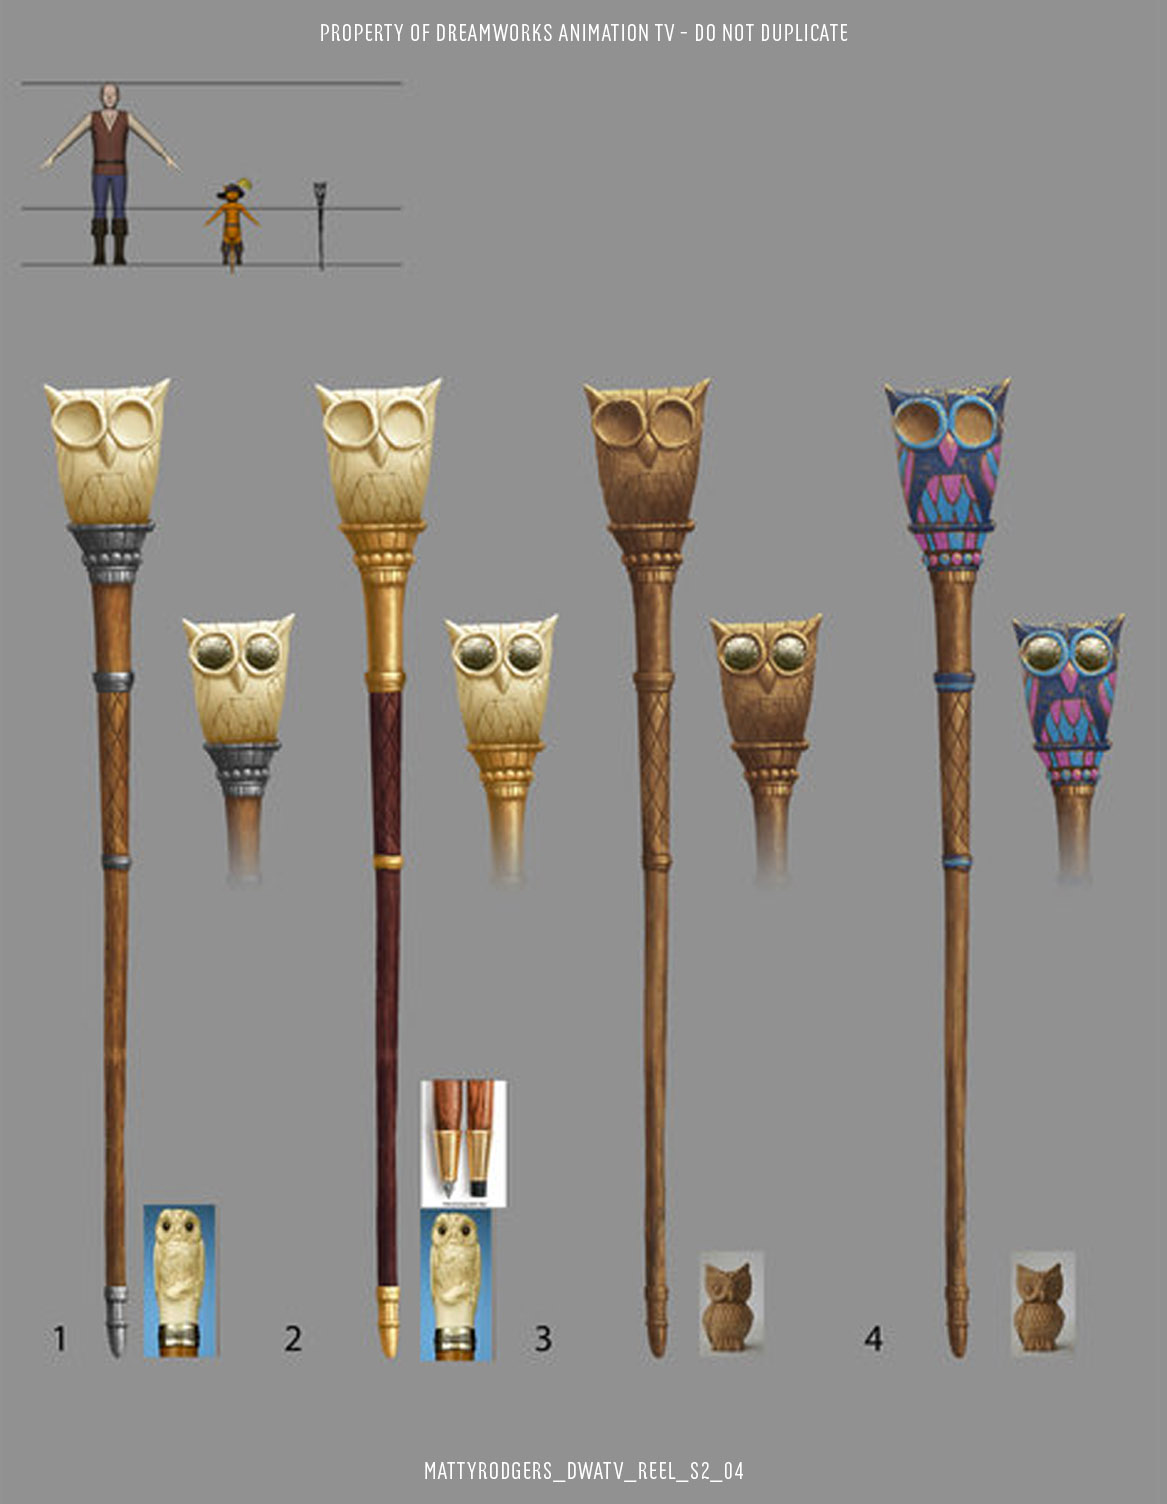 This owl staff was designed by Jake Collinge. I had a lot of fun playing with materials on the colour pass. This is a good example of how handing off the colour pass to an artist other than the one who designed the prop can bring fresh ideas to the asset. Normally three options would be enough for such a simple asset, but I was enjoying myself on this one.